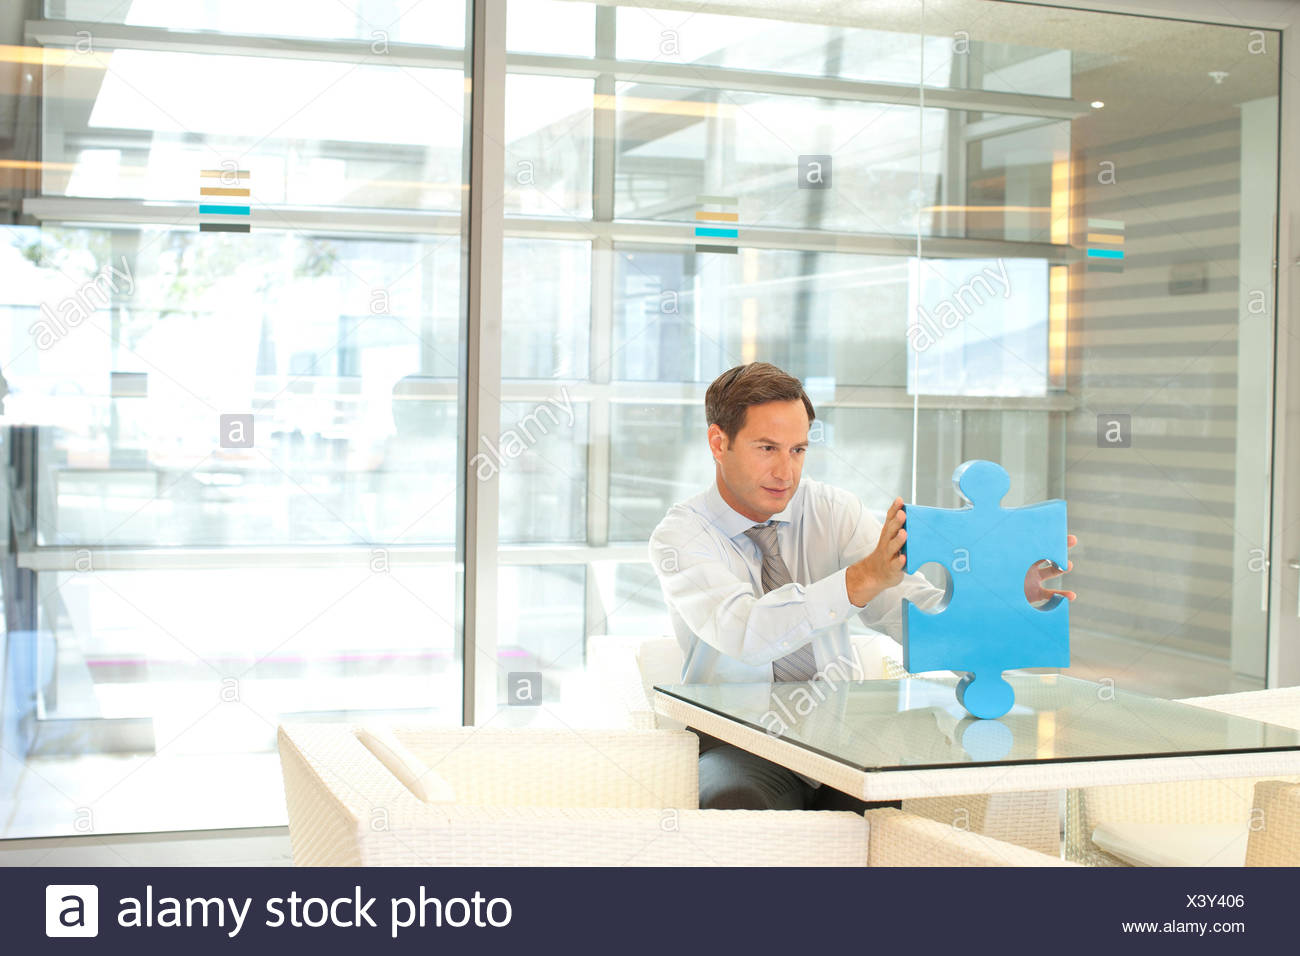 Businessman looking at jigsaw puzzle piece - Stock Image